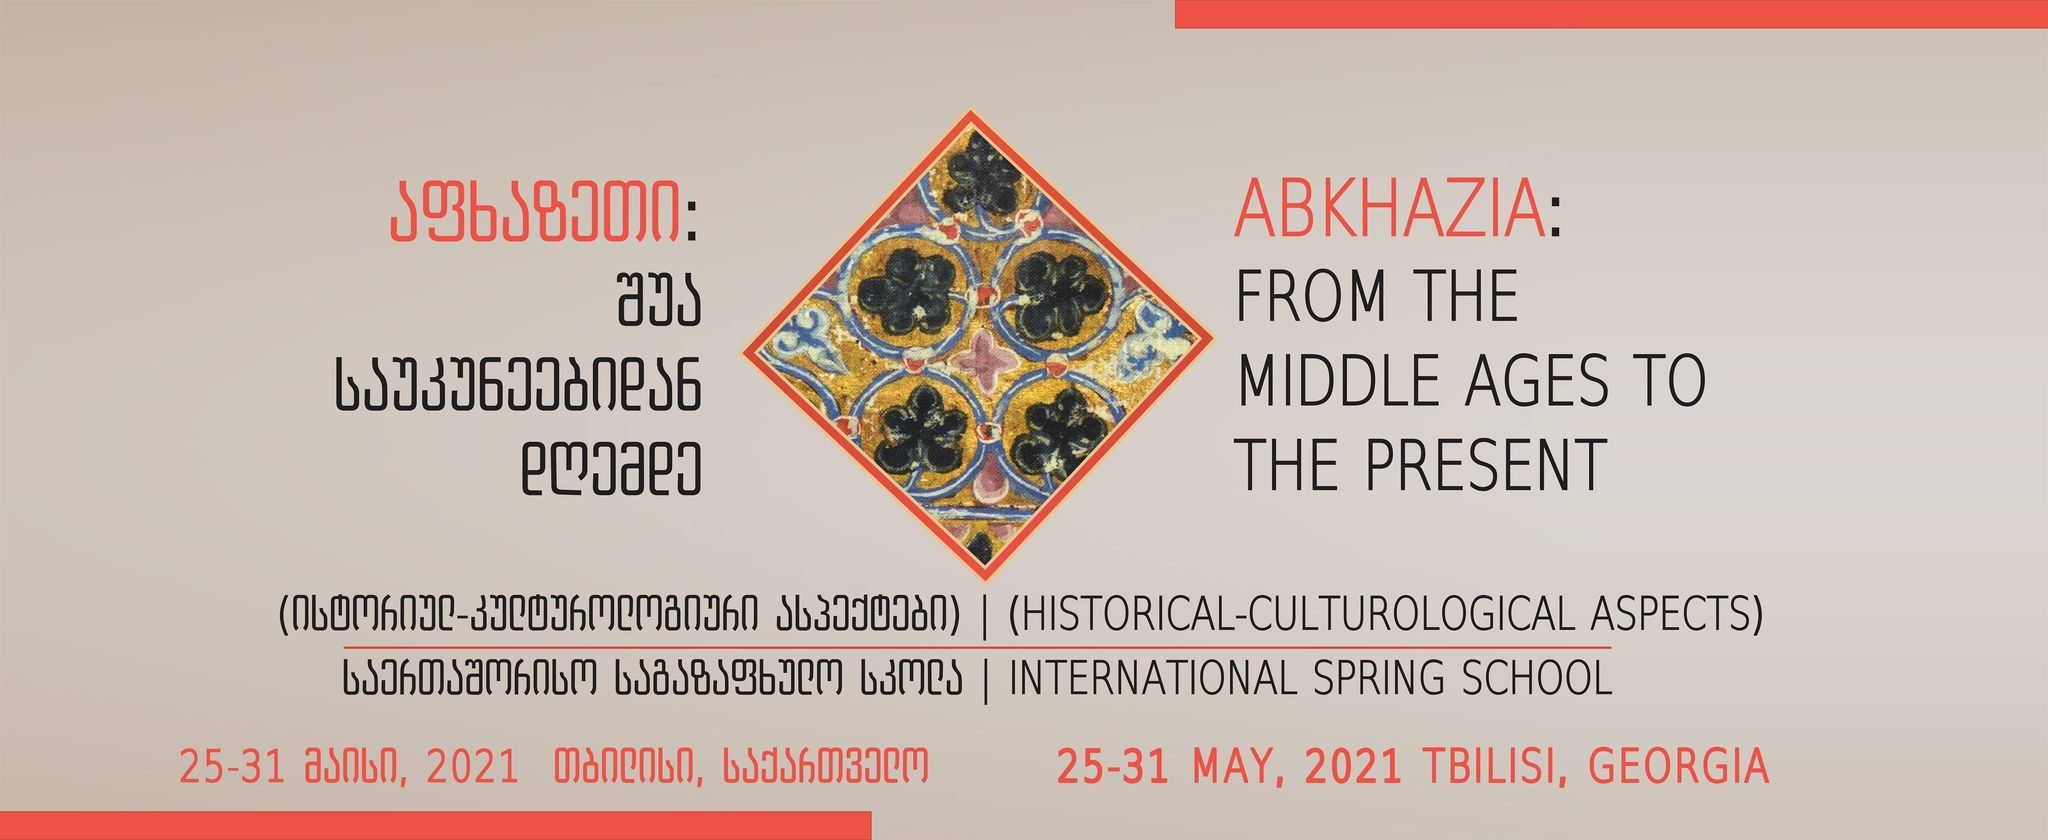 "International Spring School  ""Abkhazia: From the Middle Ages to the Present  (Historical-Culturological Aspects)"""